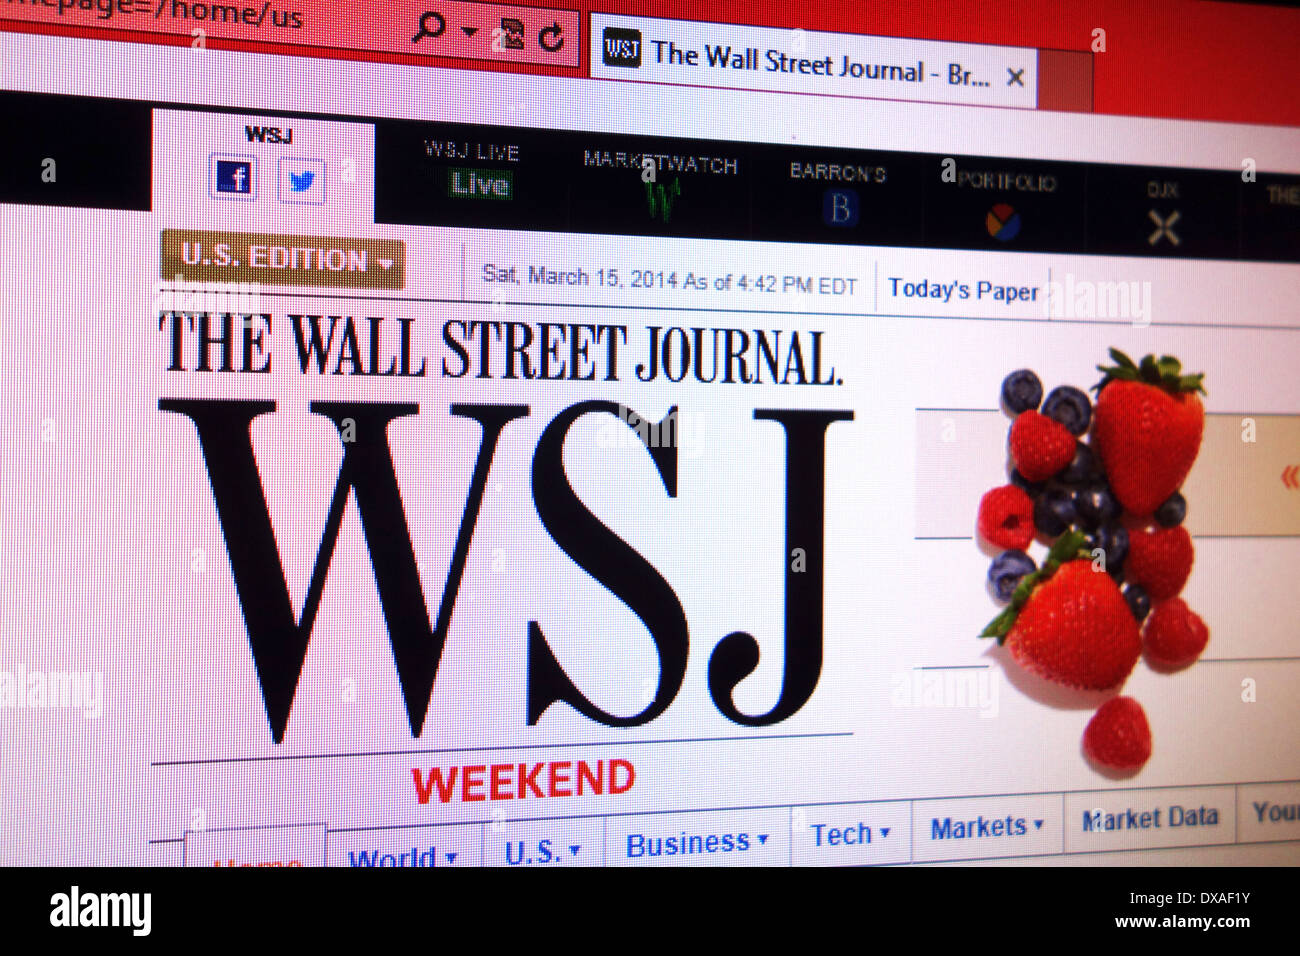 The Wall Street Journal website - Stock Image